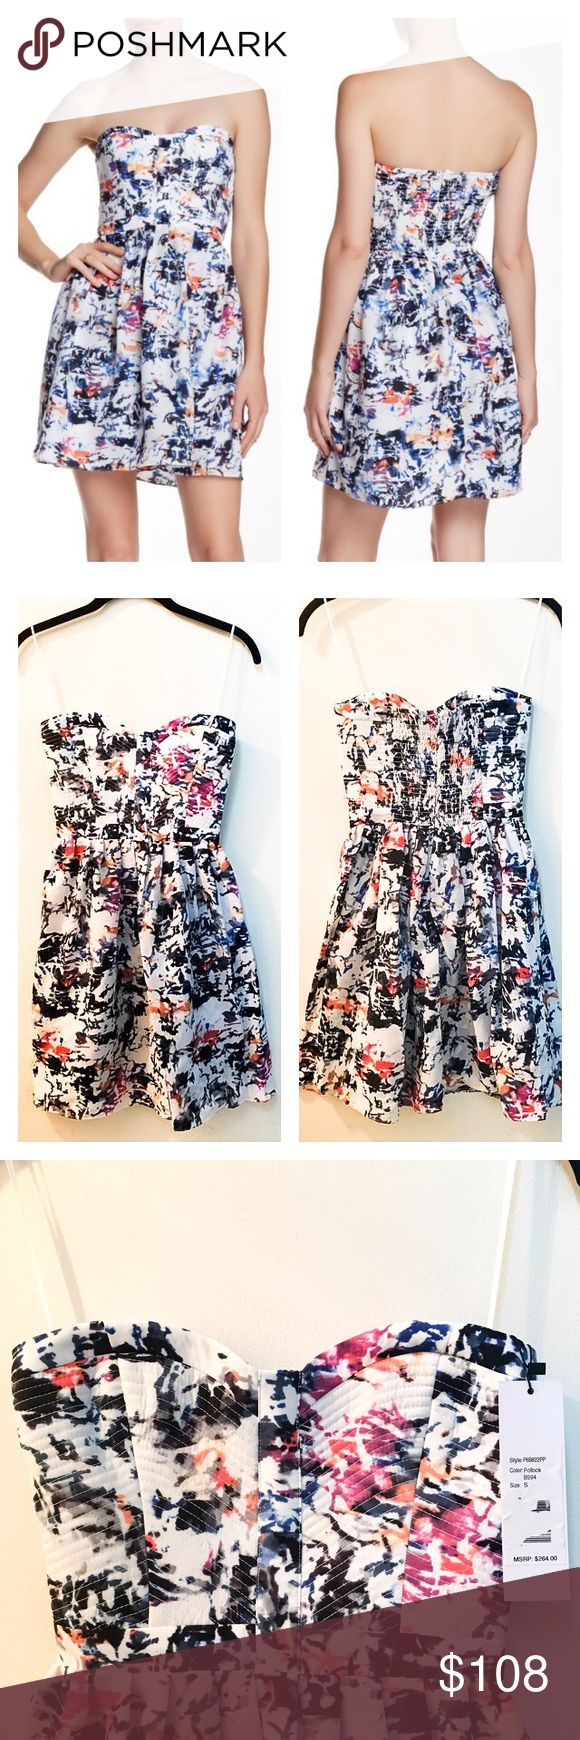 55% OFF! Parker Party Strapless Bustier Dress Reasonable offers welcome. Same or next day shipping. Brand new with tags! Stunning, flirty bustier party dress from Parker. Silky feel, beautiful print and stretch back for the perfect fit. 🎉 Size small, could also likely fit XS (the stretchy back makes this dress super versatile!). - Sweetheart neck - Strapless - Banded waist - Smocked back - Hidden back zip - Boned side and lightly structured fused front bodice - Knife pleated skirt - Allover…